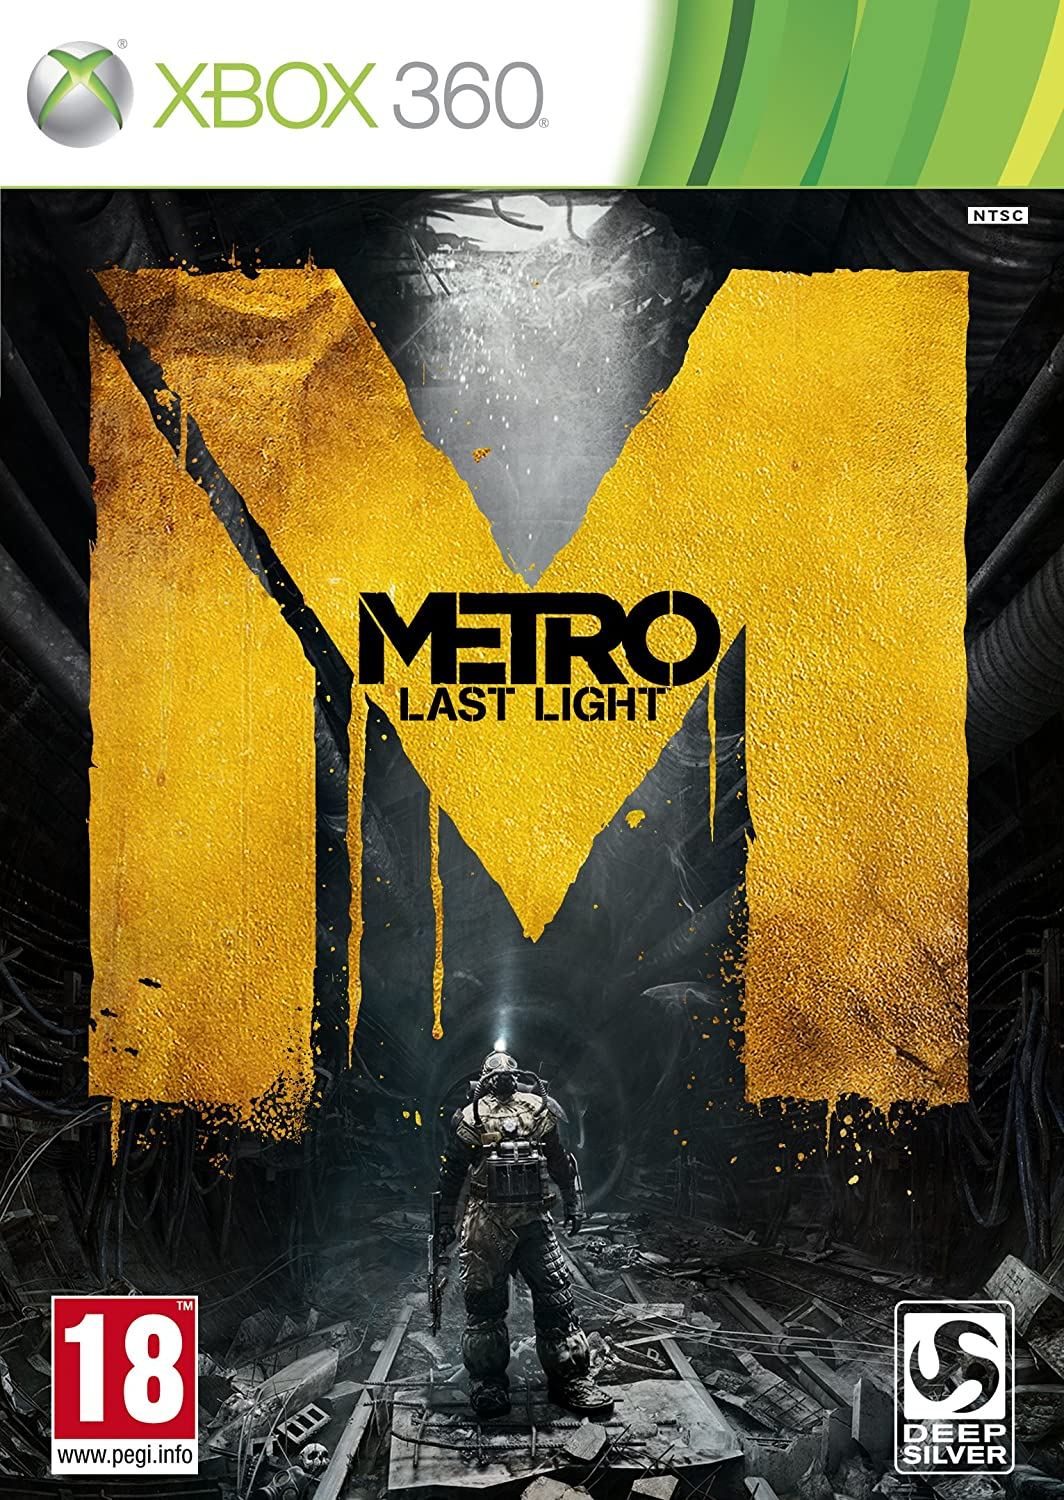 Metro Last Light Xbox 360 Inventory cleanup selling sale Limited time for free shipping